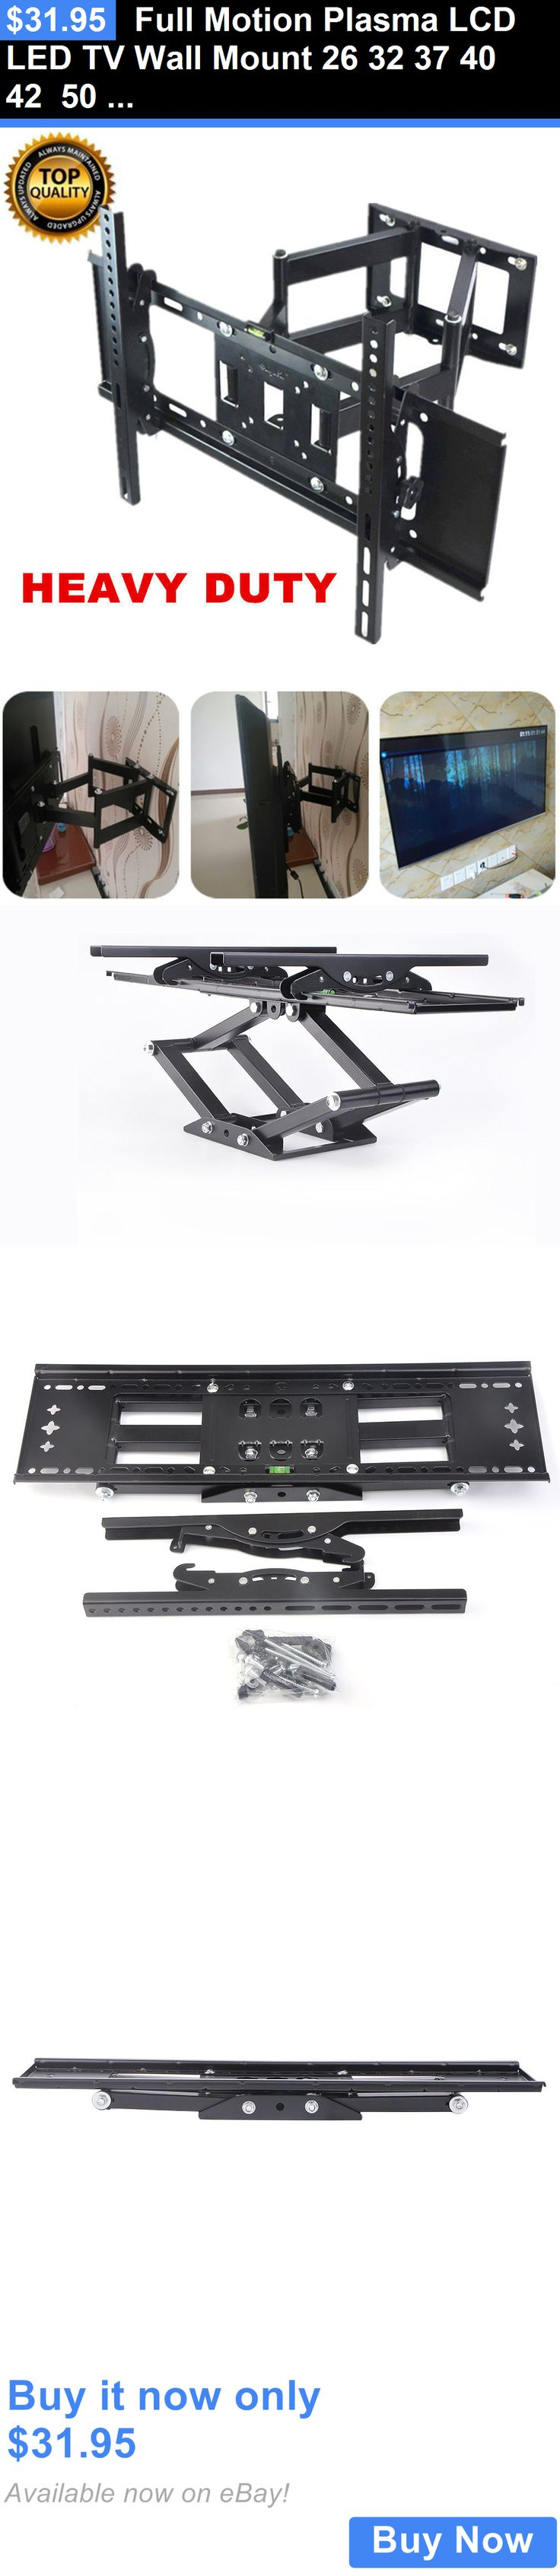 TV Mounts and Brackets: Full Motion Plasma Lcd Led Tv Wall Mount 26 32 37 40 42 50 52 55 60 65 70 Uub BUY IT NOW ONLY: $31.95